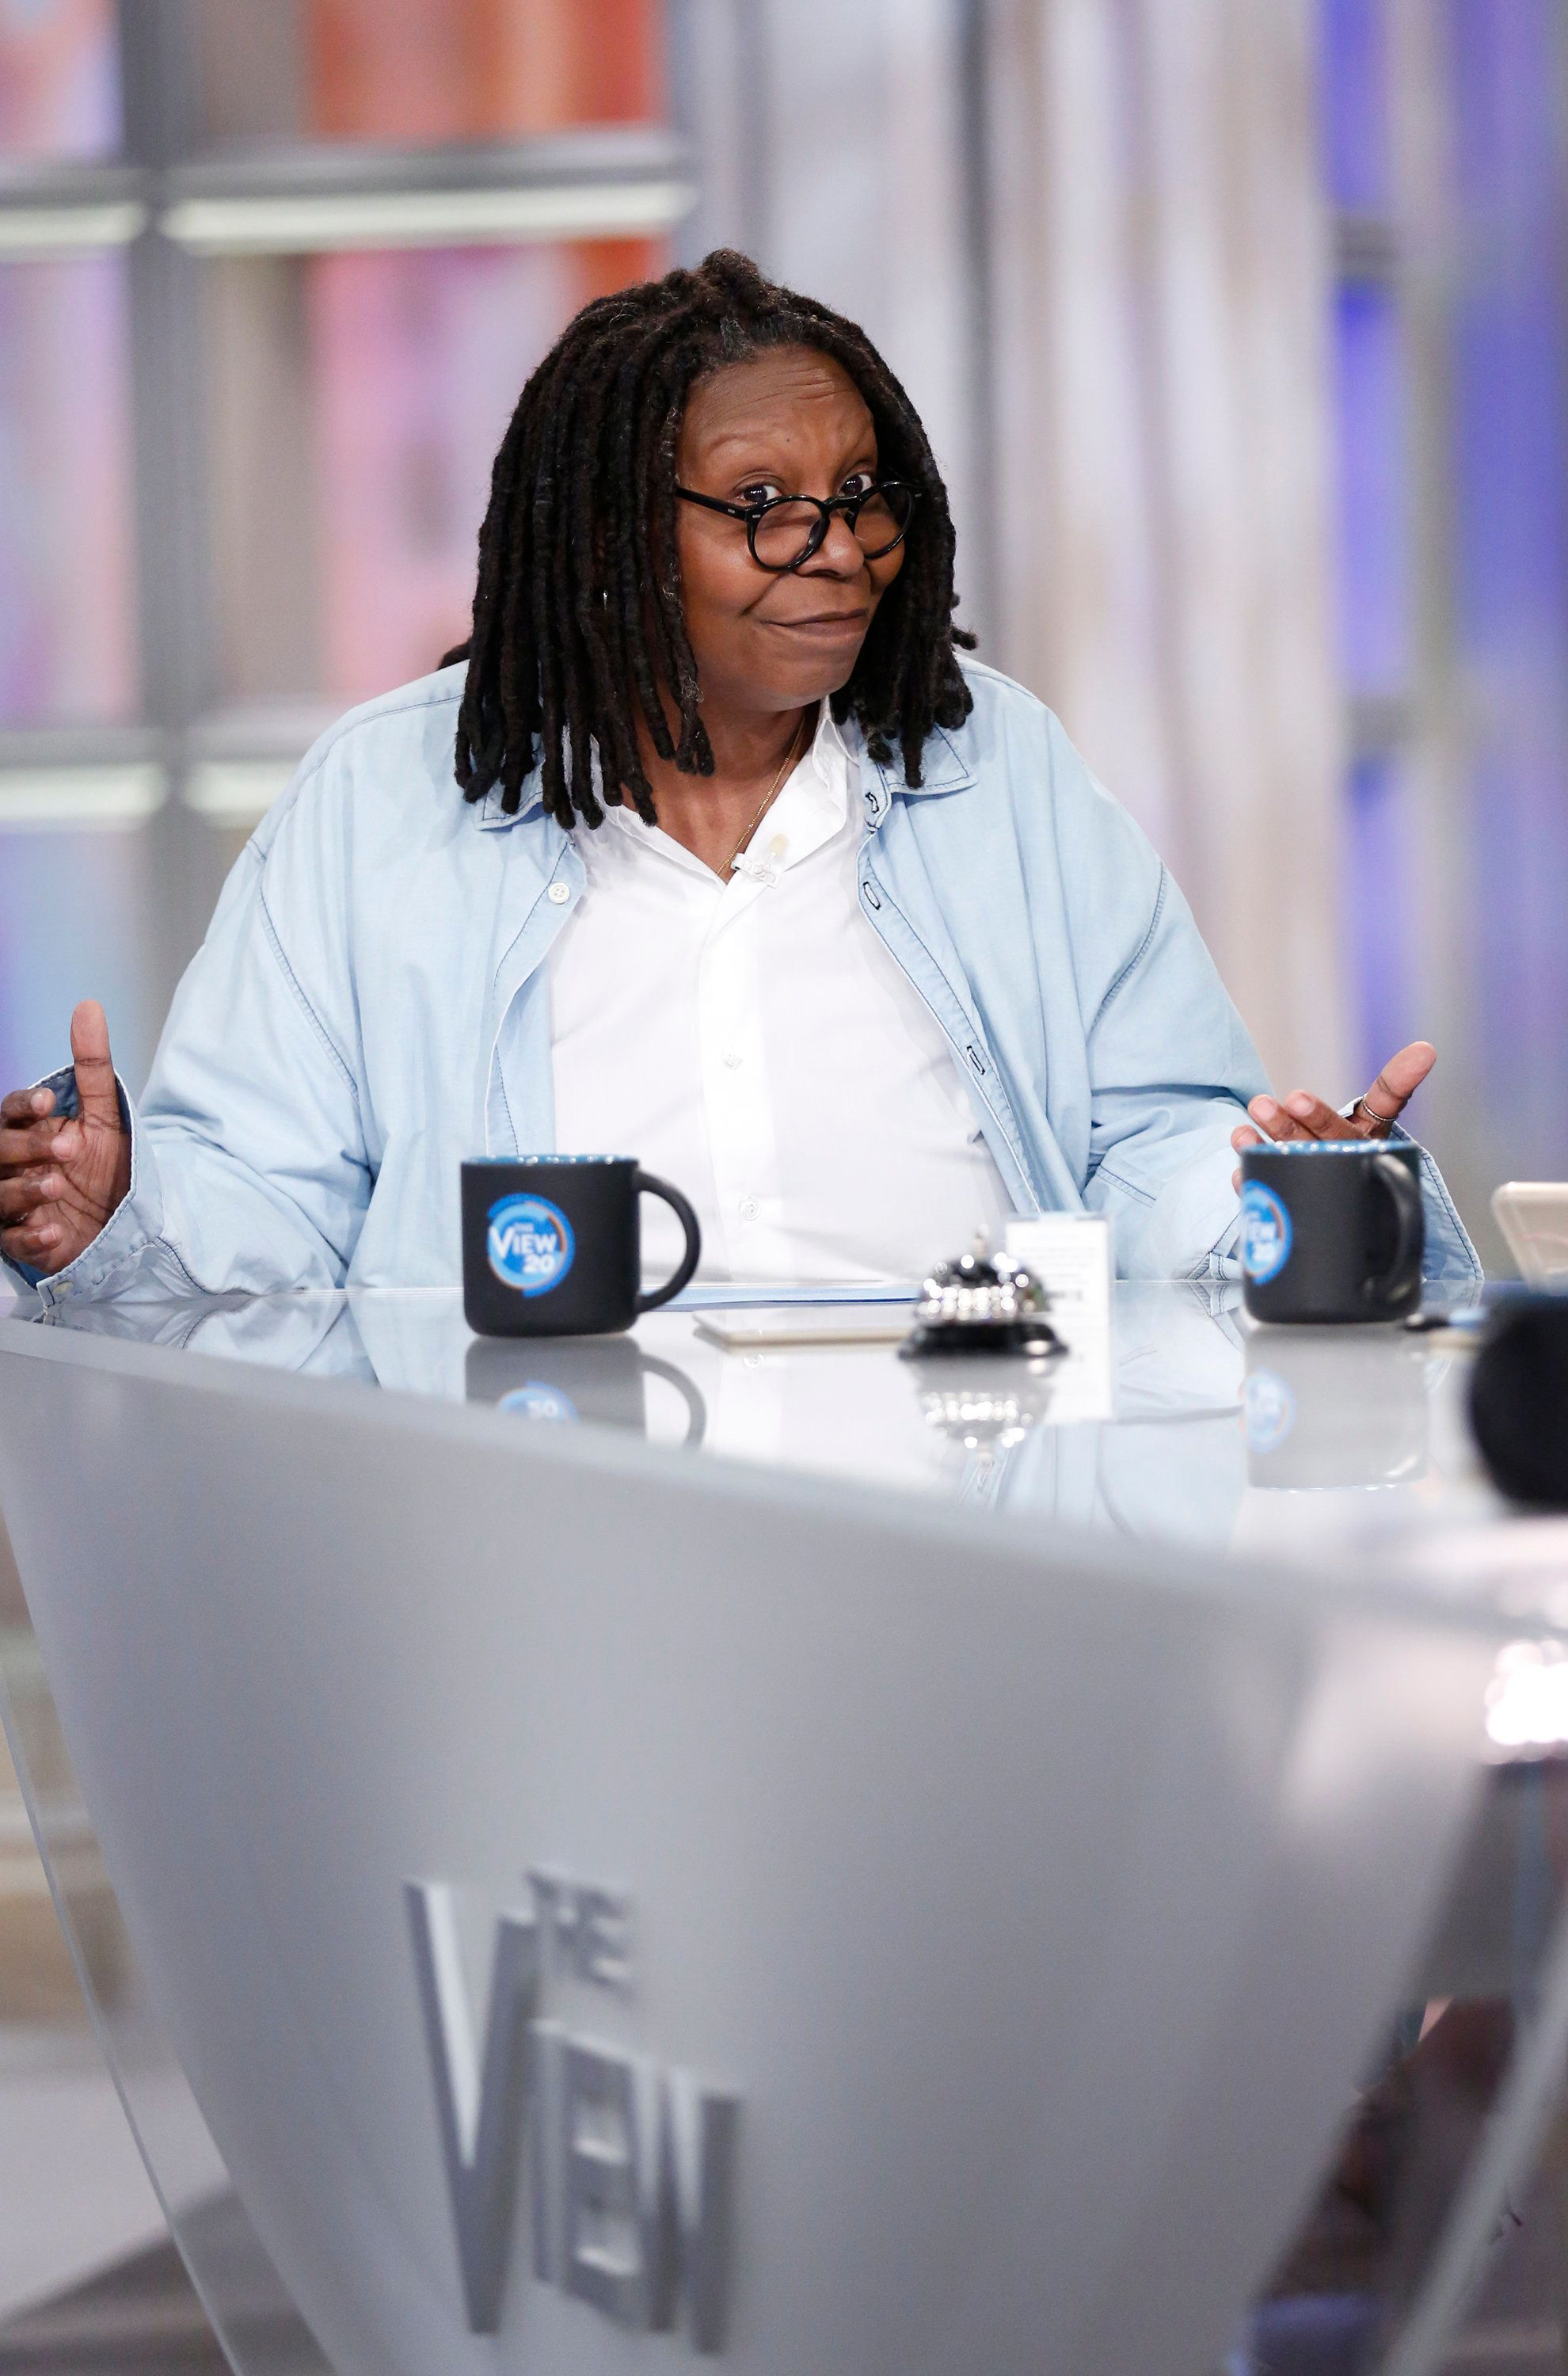 THE VIEW - Rachel Maddow is the guest today, Wednesday, March 22, 2017 on ABC's 'The View.'   'The View' airs Monday-Friday (11:00 am-12:00 pm, ET) on the ABC Television Network.     (Photo by Heidi Gutman/ABC via Getty Images)  WHOOPI GOLDBERG